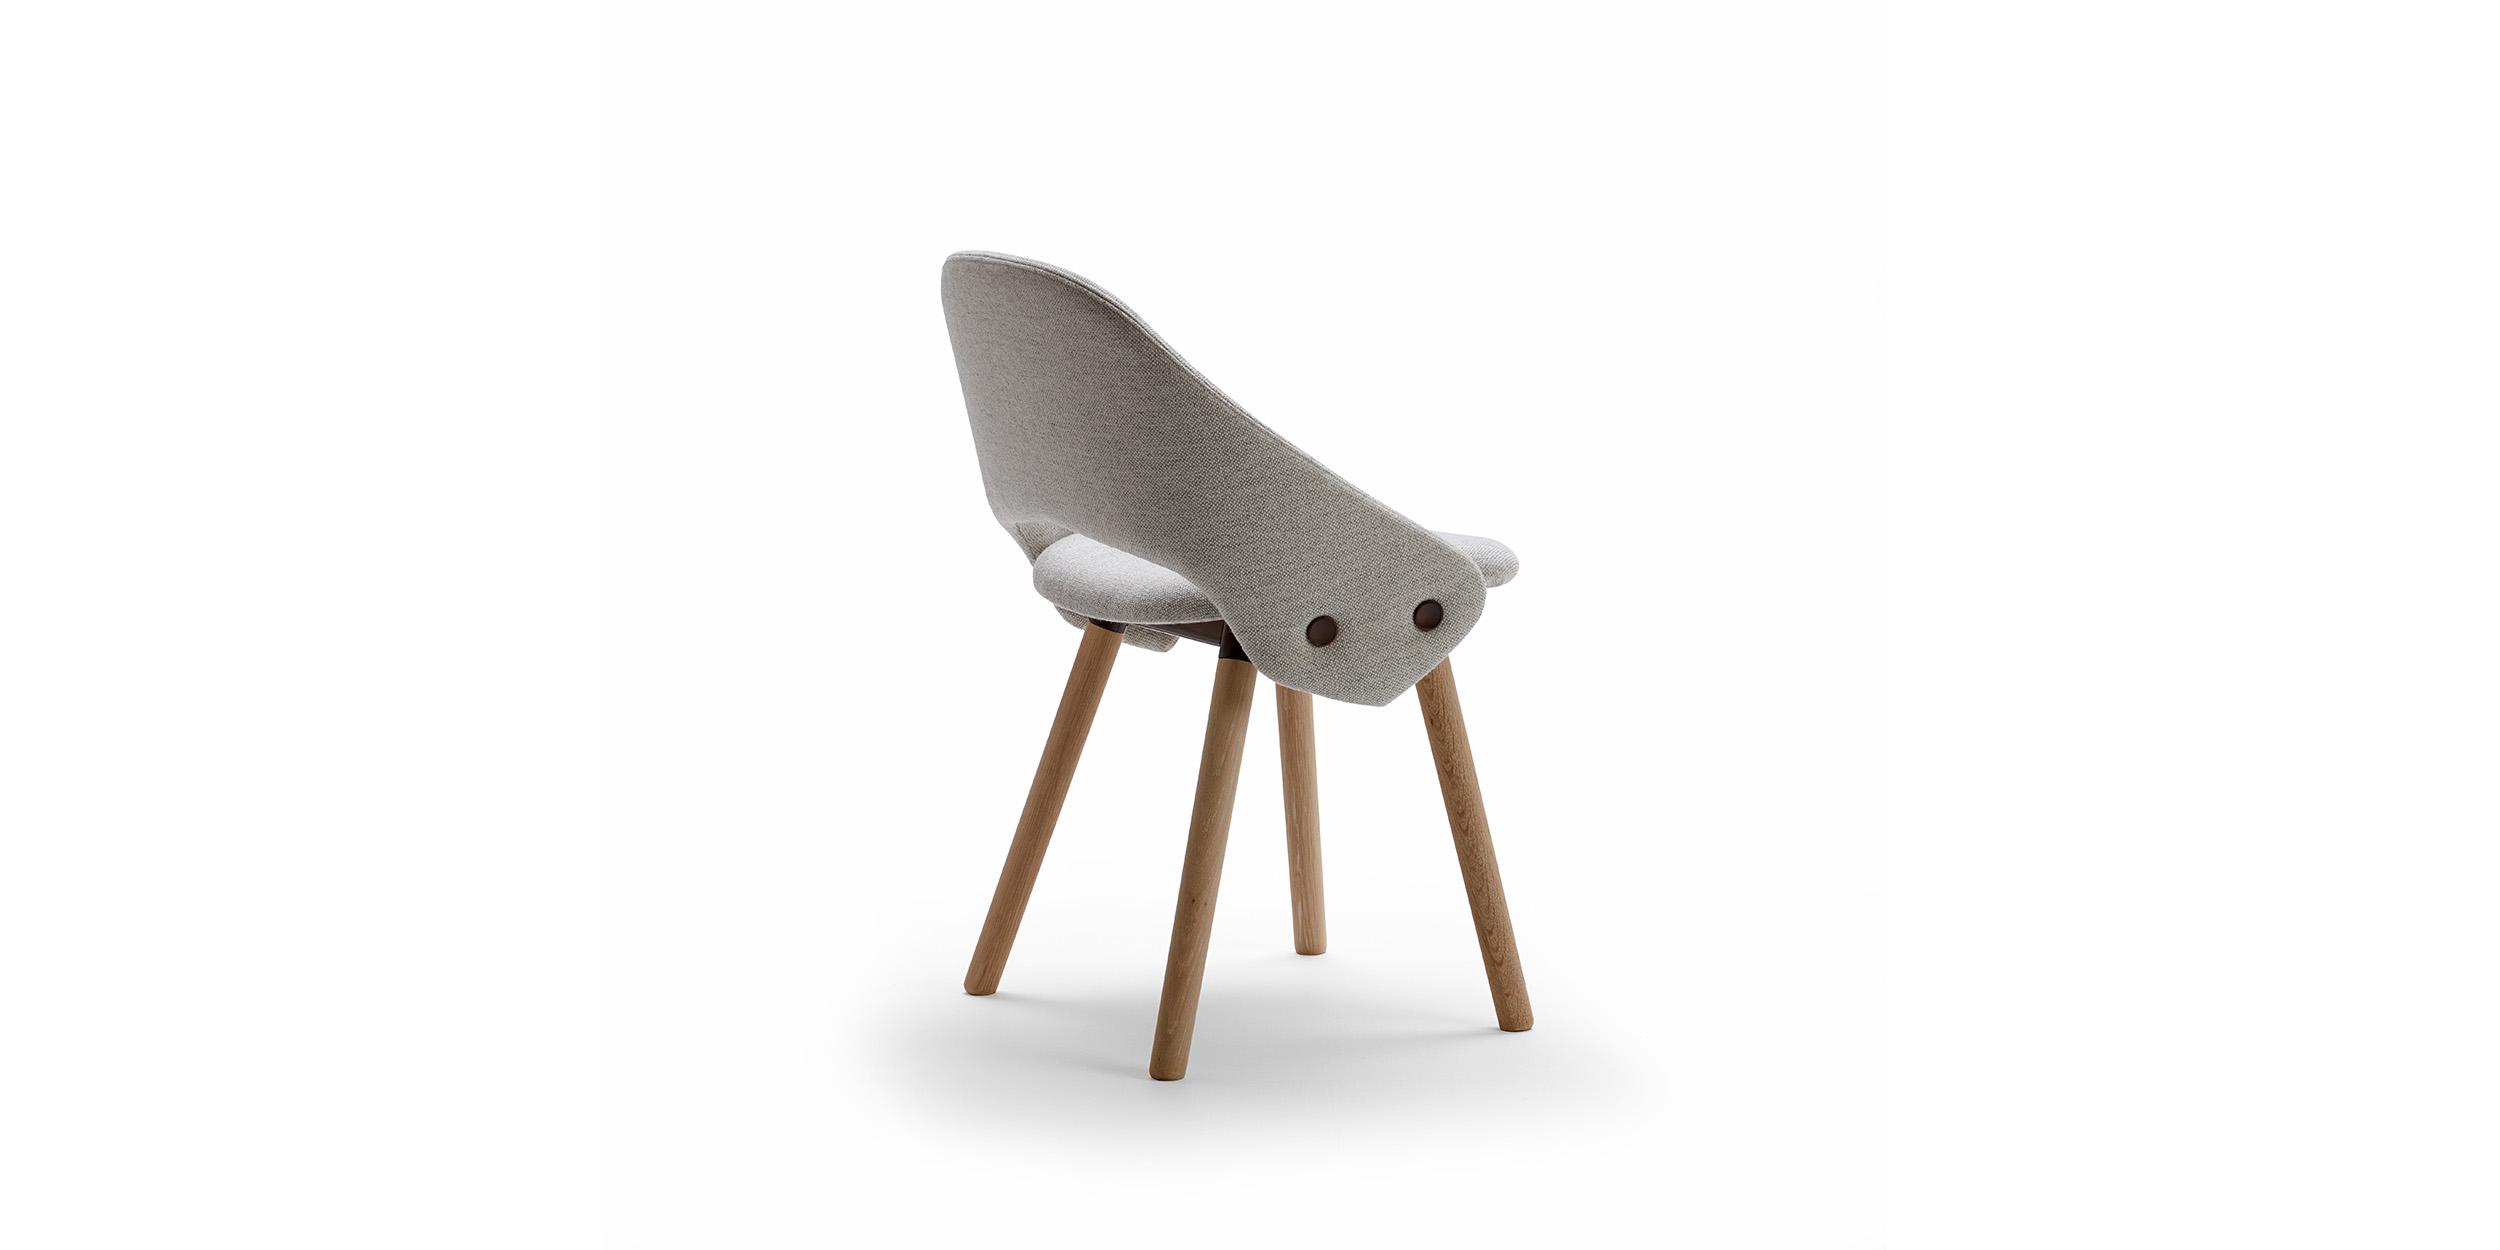 oslo posture chair review covers hire wedding tailor comfortable design by louise hederstrom offecct